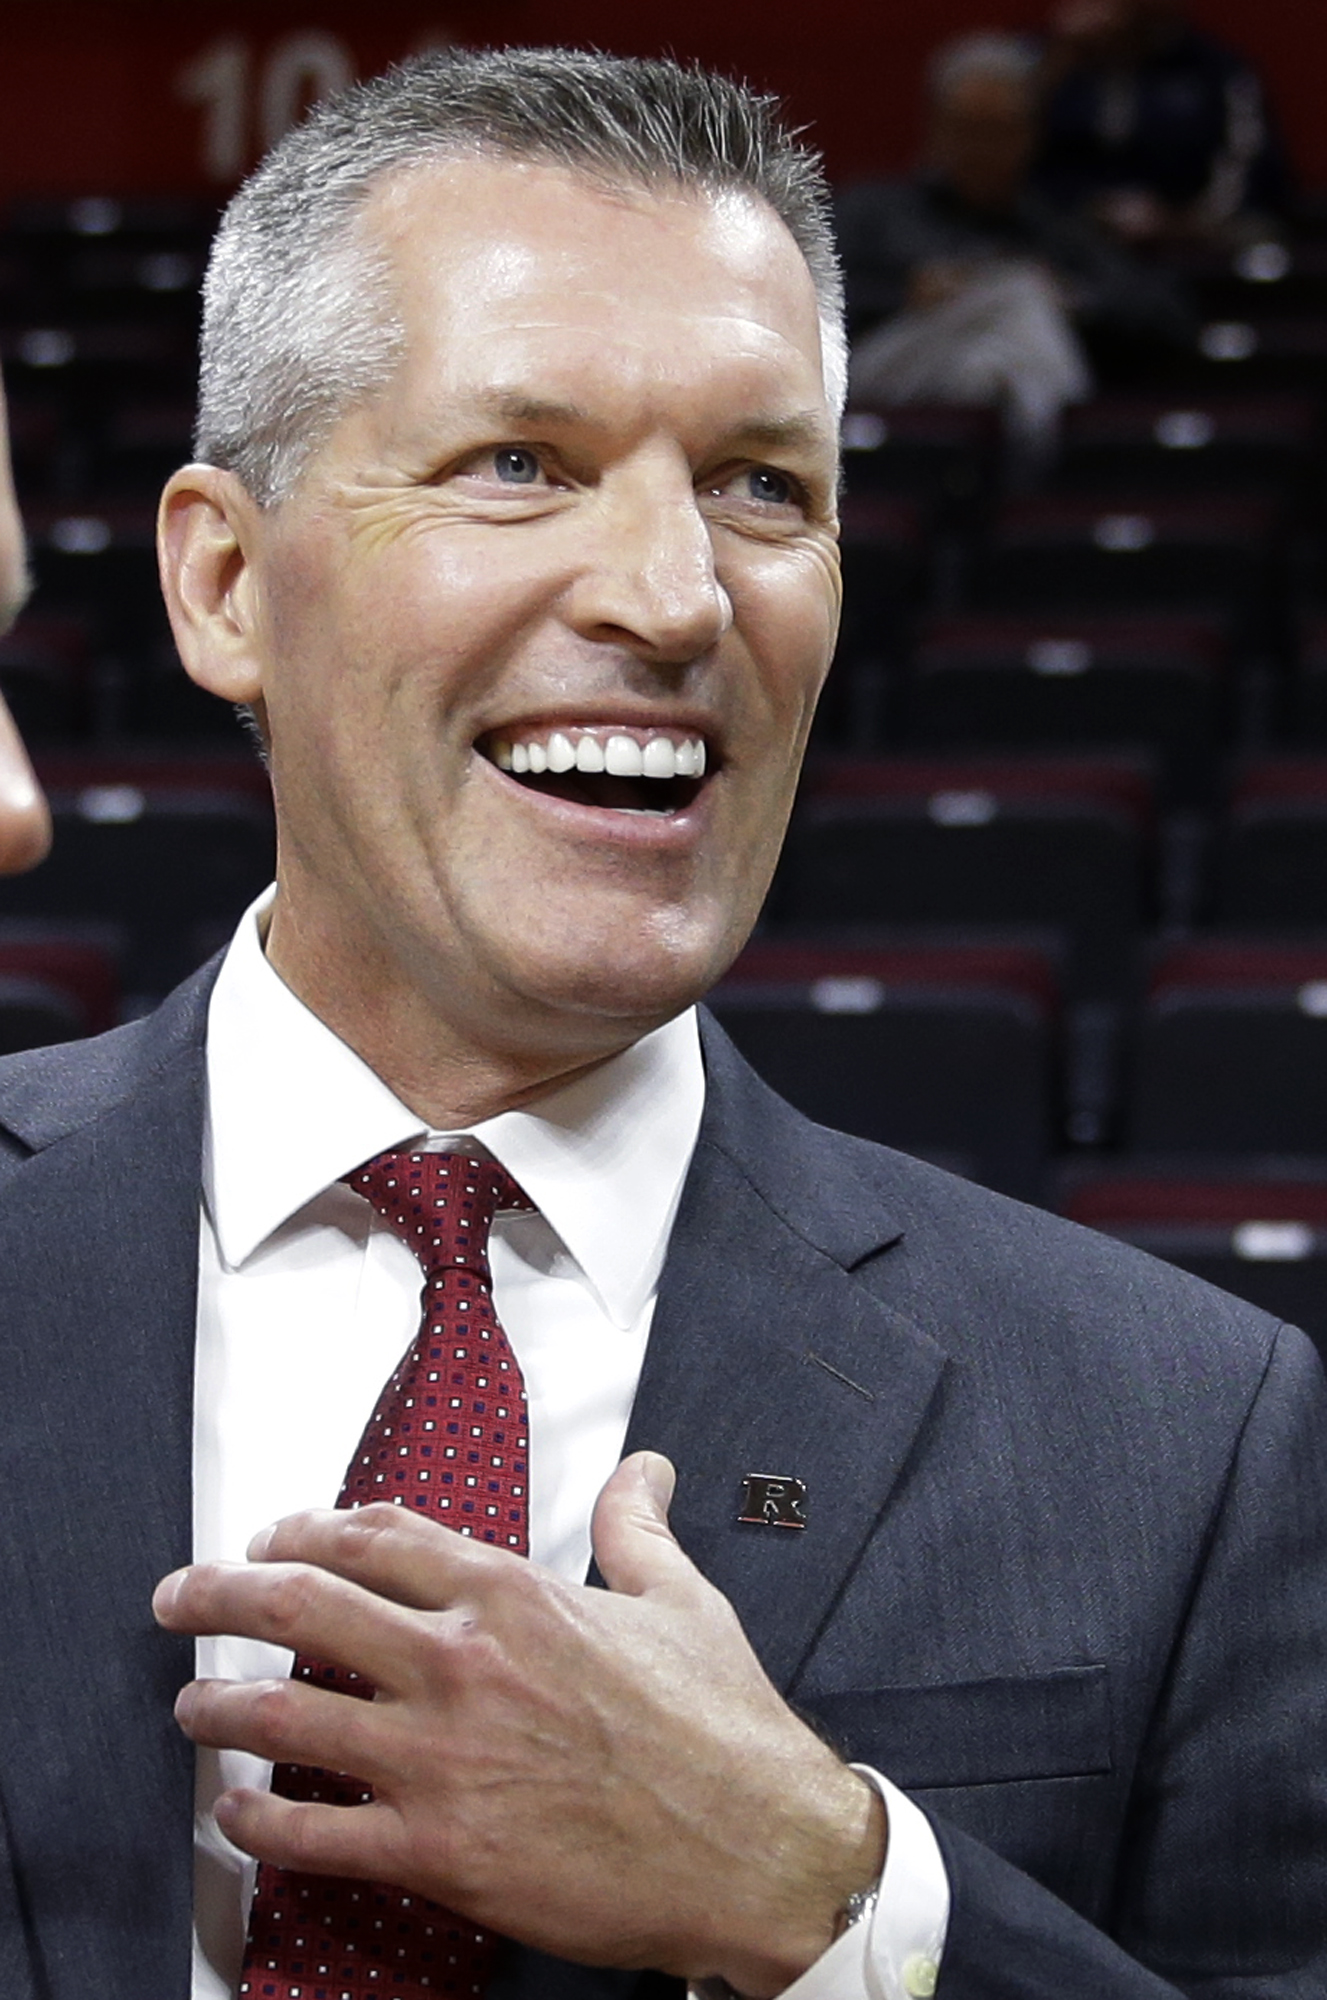 Rutgers new athletic director Patrick Hobbs, Dean Emeritus of the Seton Hall University School of Law, stands on the court before an NCAA college basketball game against Wake Forest, Monday, Nov. 30, 2015, in Piscataway, N.J. Rutgers fired football coach